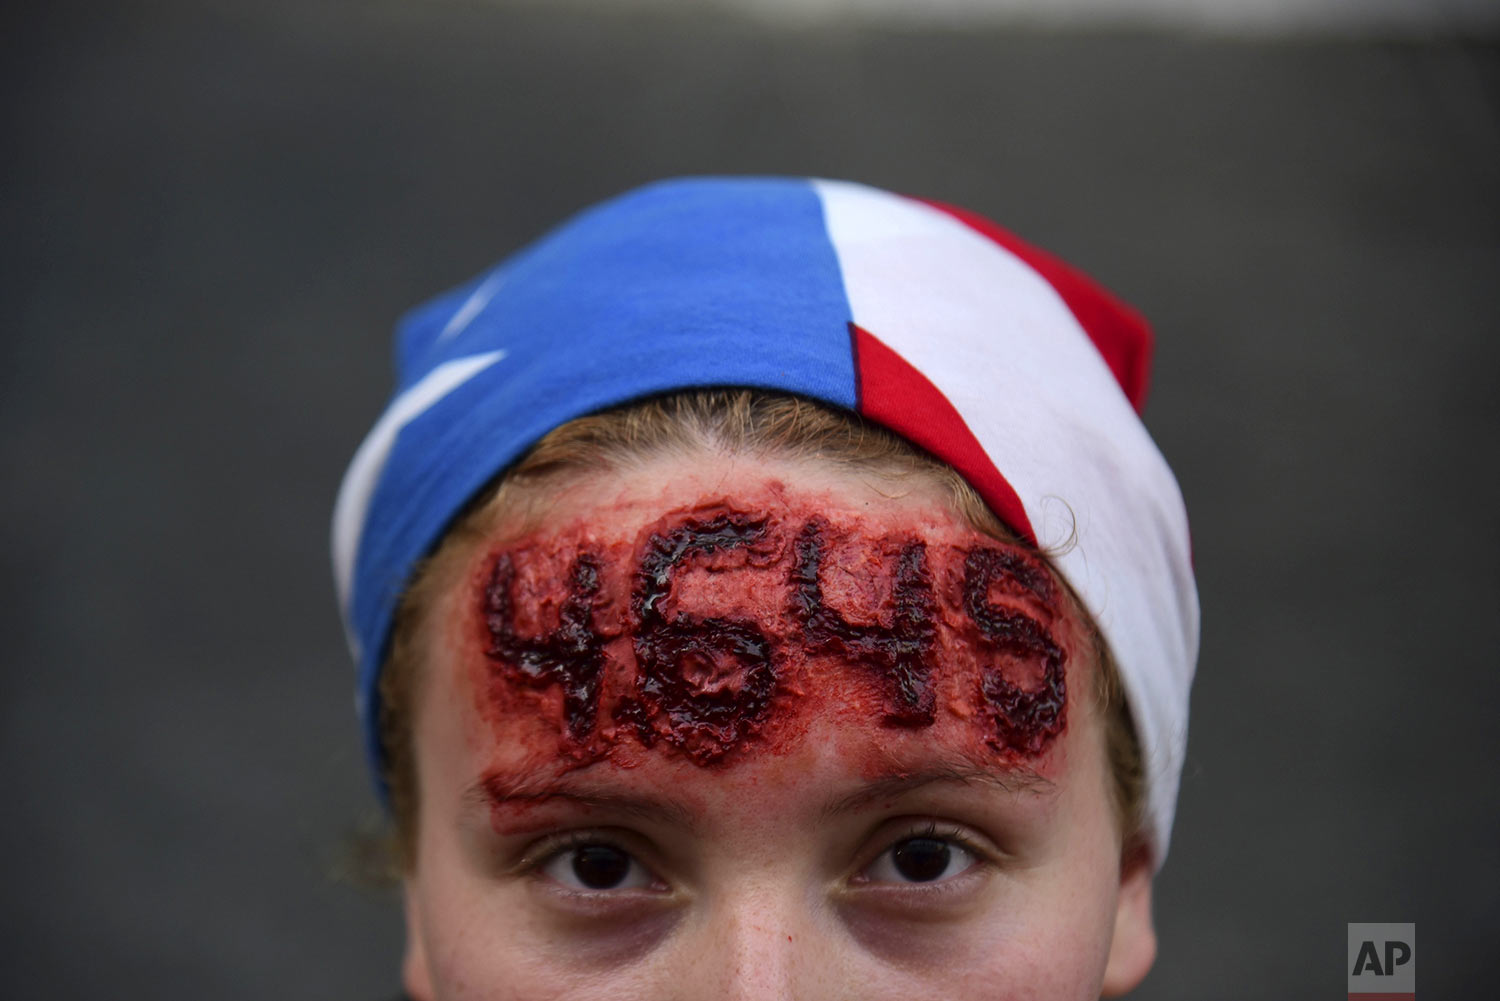 Nicole Diaz wears special effects make-up with hurricane Maria's death toll number written on her forehead, while protesting against Governor Ricardo Rossello, in San Juan, Puerto Rico, July 19, 2019. Protesters are demanding Rossello step down for his involvement in a private chat in which he used profanities to describe an ex-New York City councilwoman and a federal control board overseeing the island's finance. (AP Photo/Carlos Giusti)